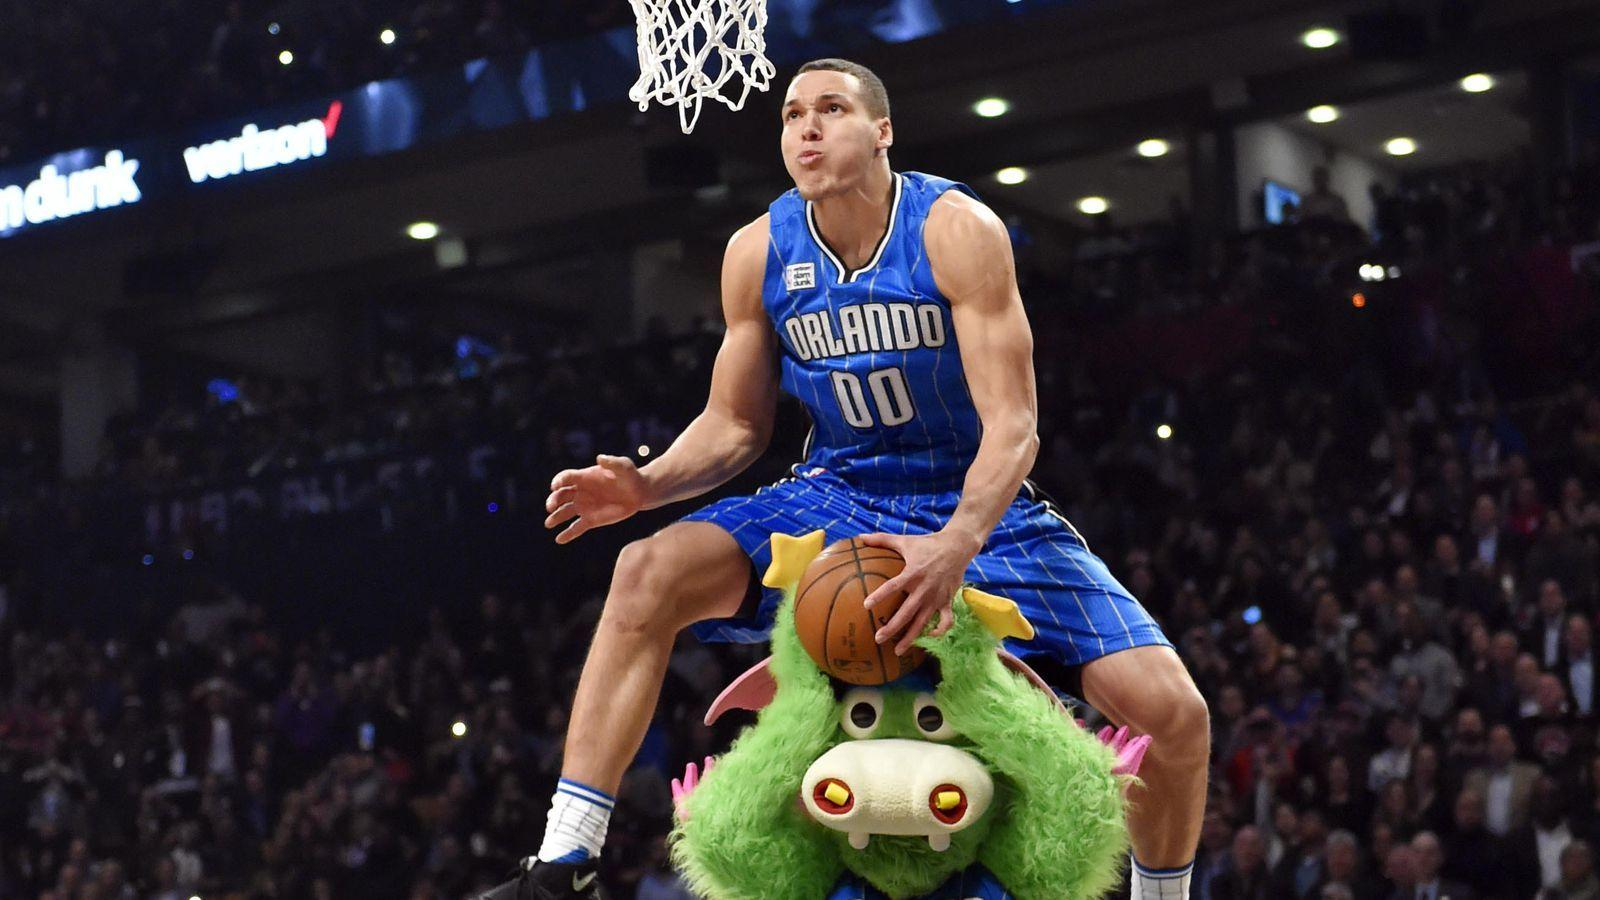 Aaron Gordon Dunk Wallpaper Pictures to Pin on Pinterest - PinsDaddy